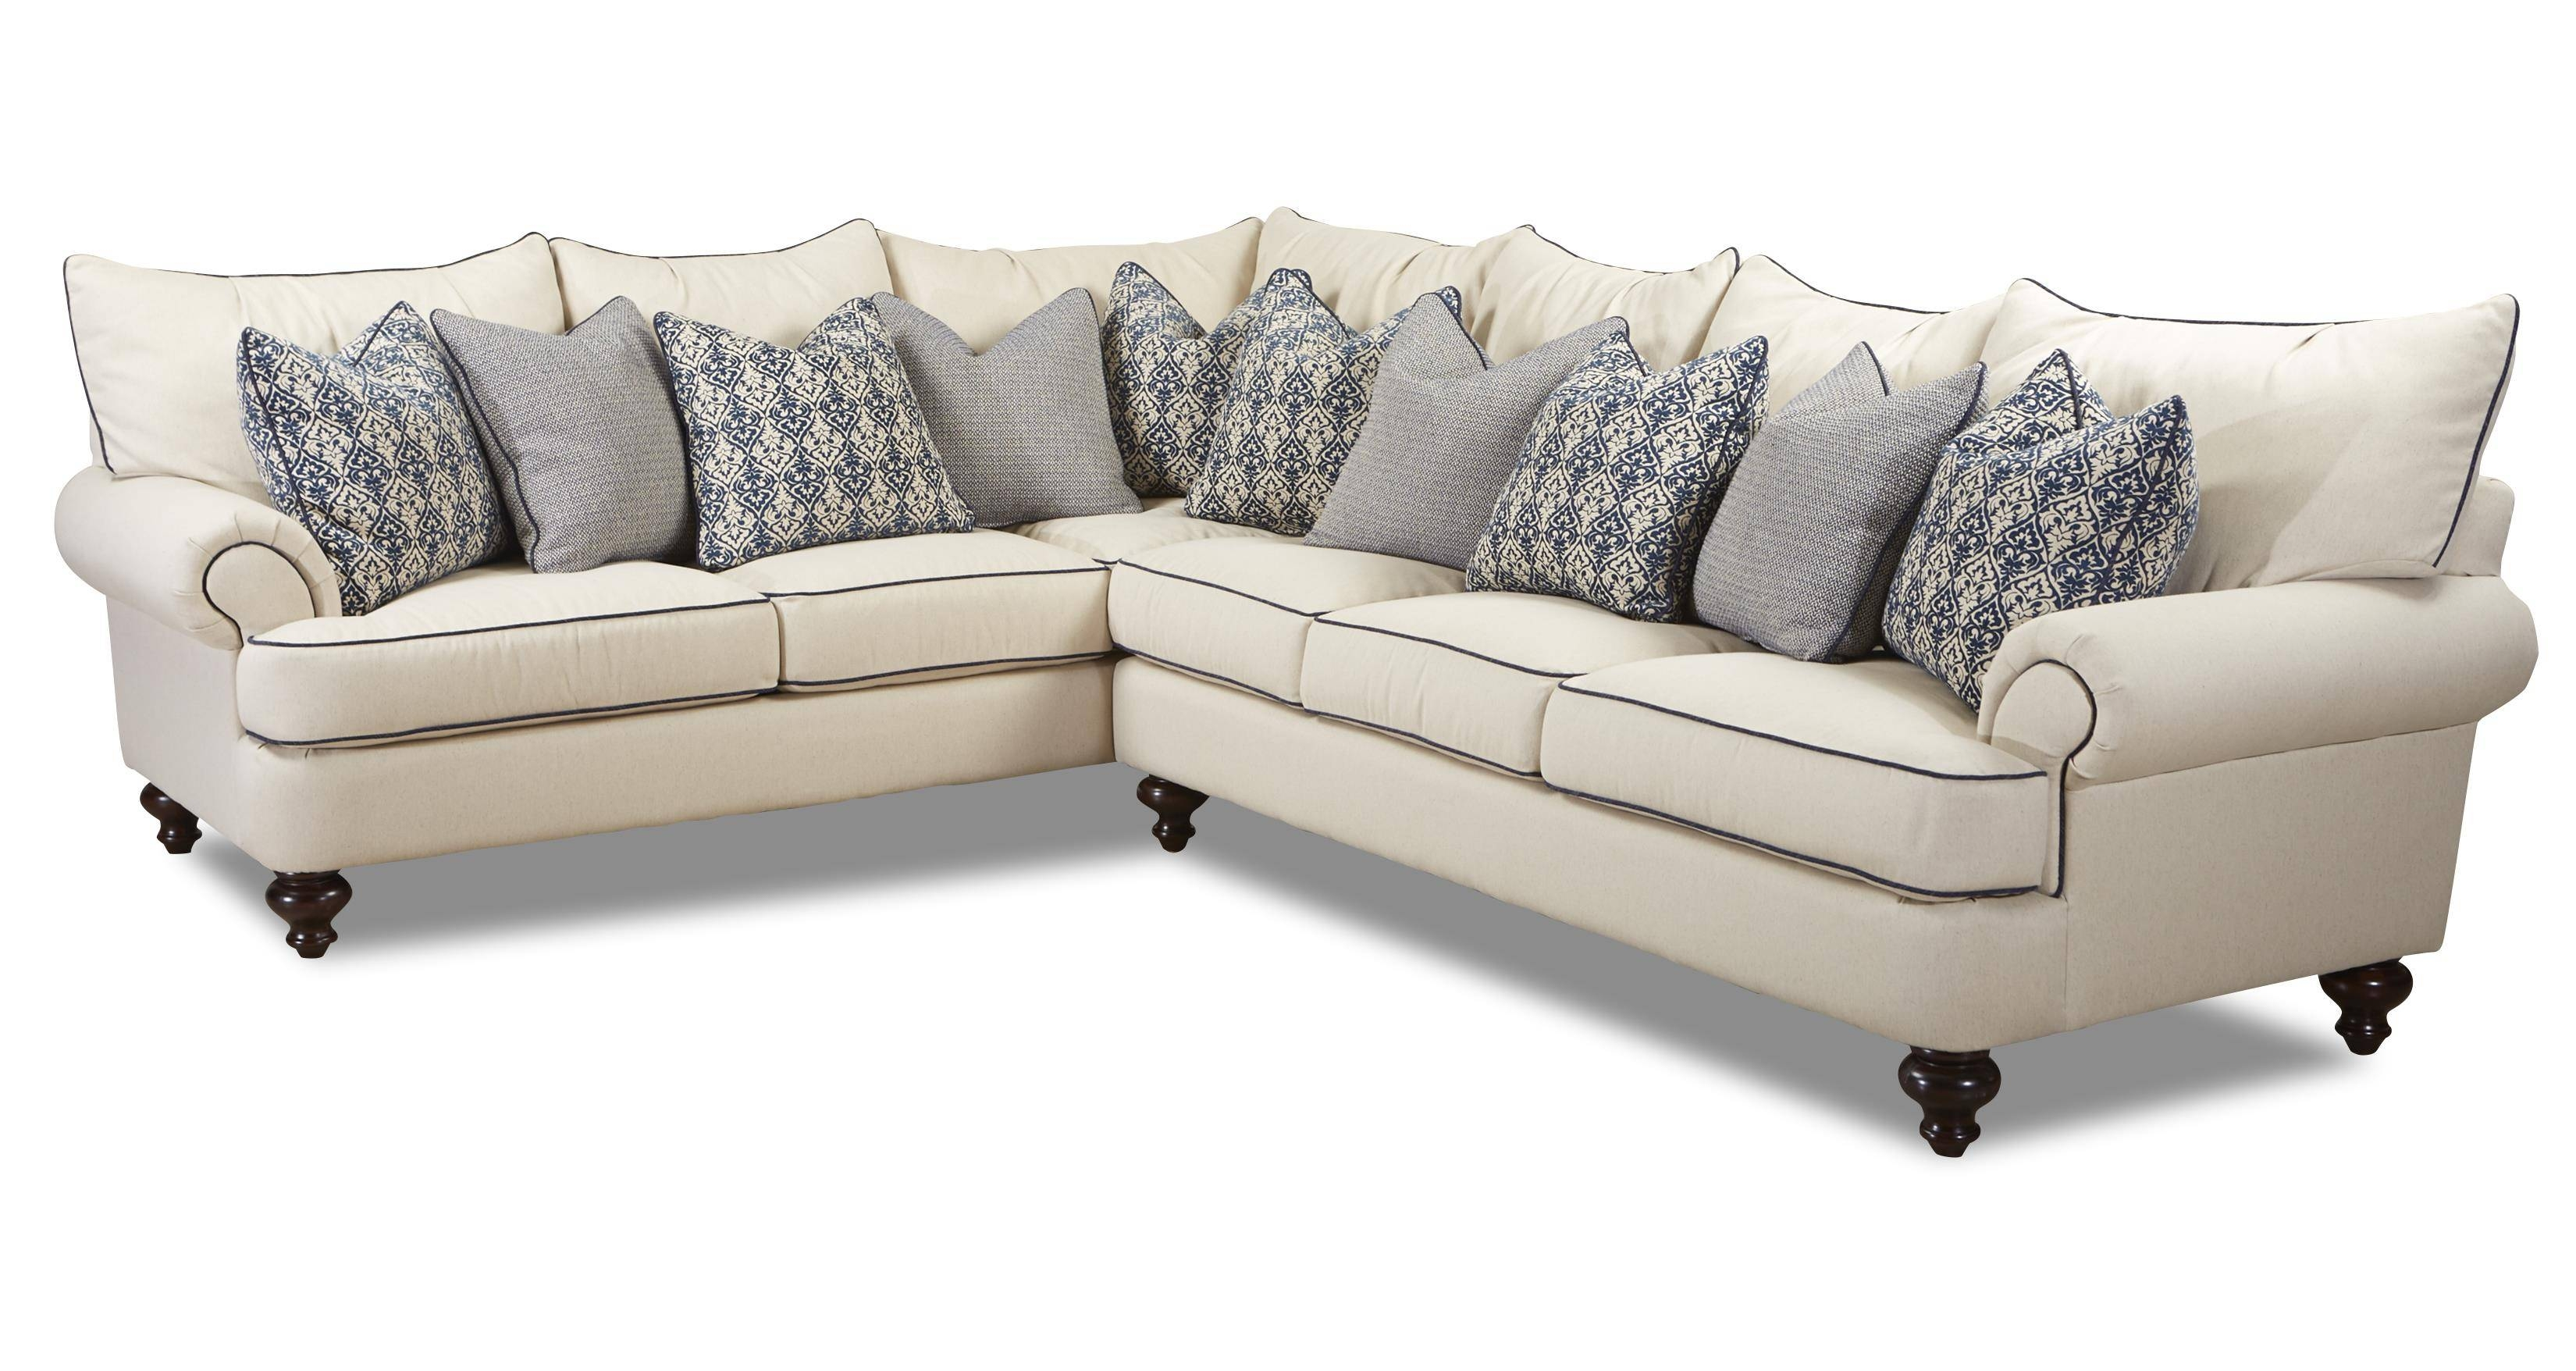 Popular Photo of Shabby Chic Sectional Sofas